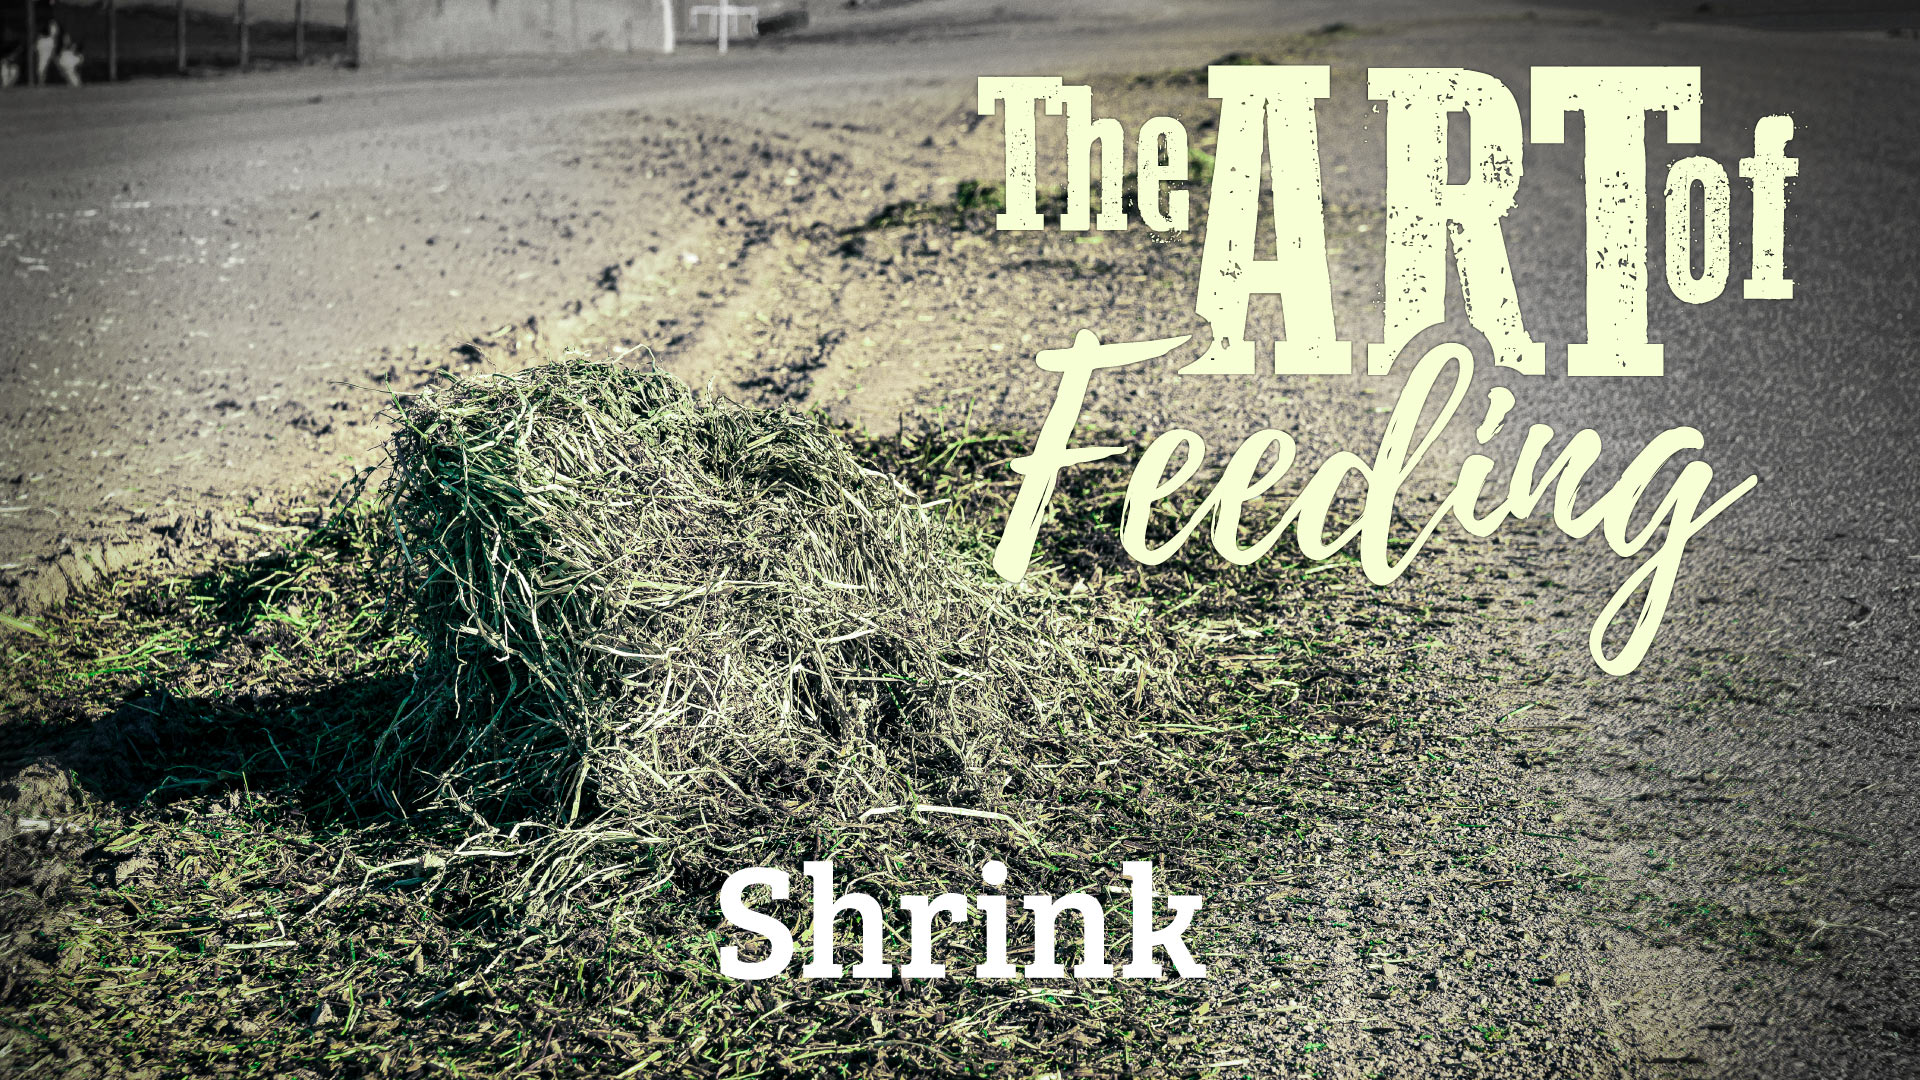 The Art of Feeding: Shrink